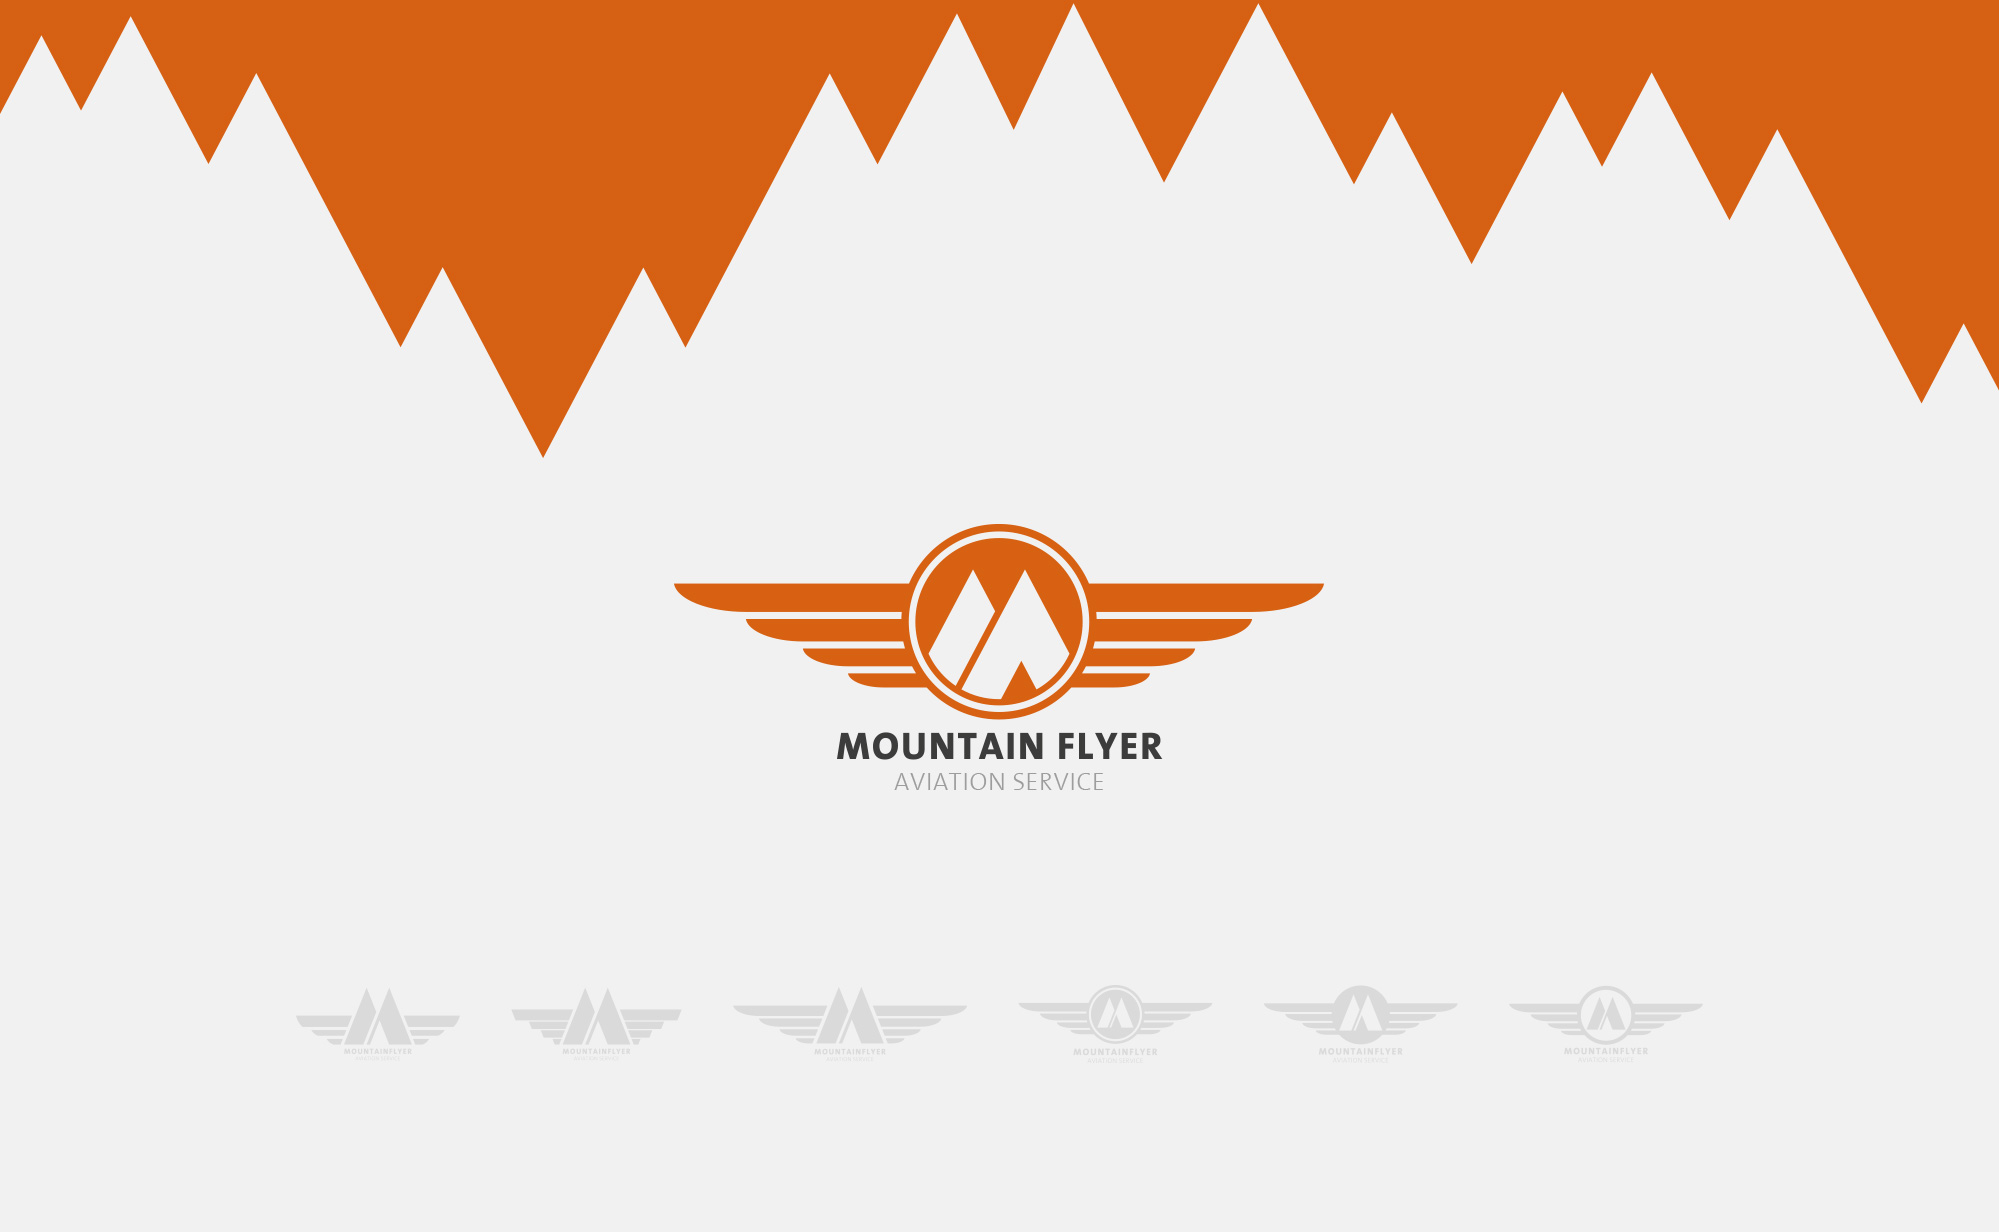 mountainflyer_logo.jpg